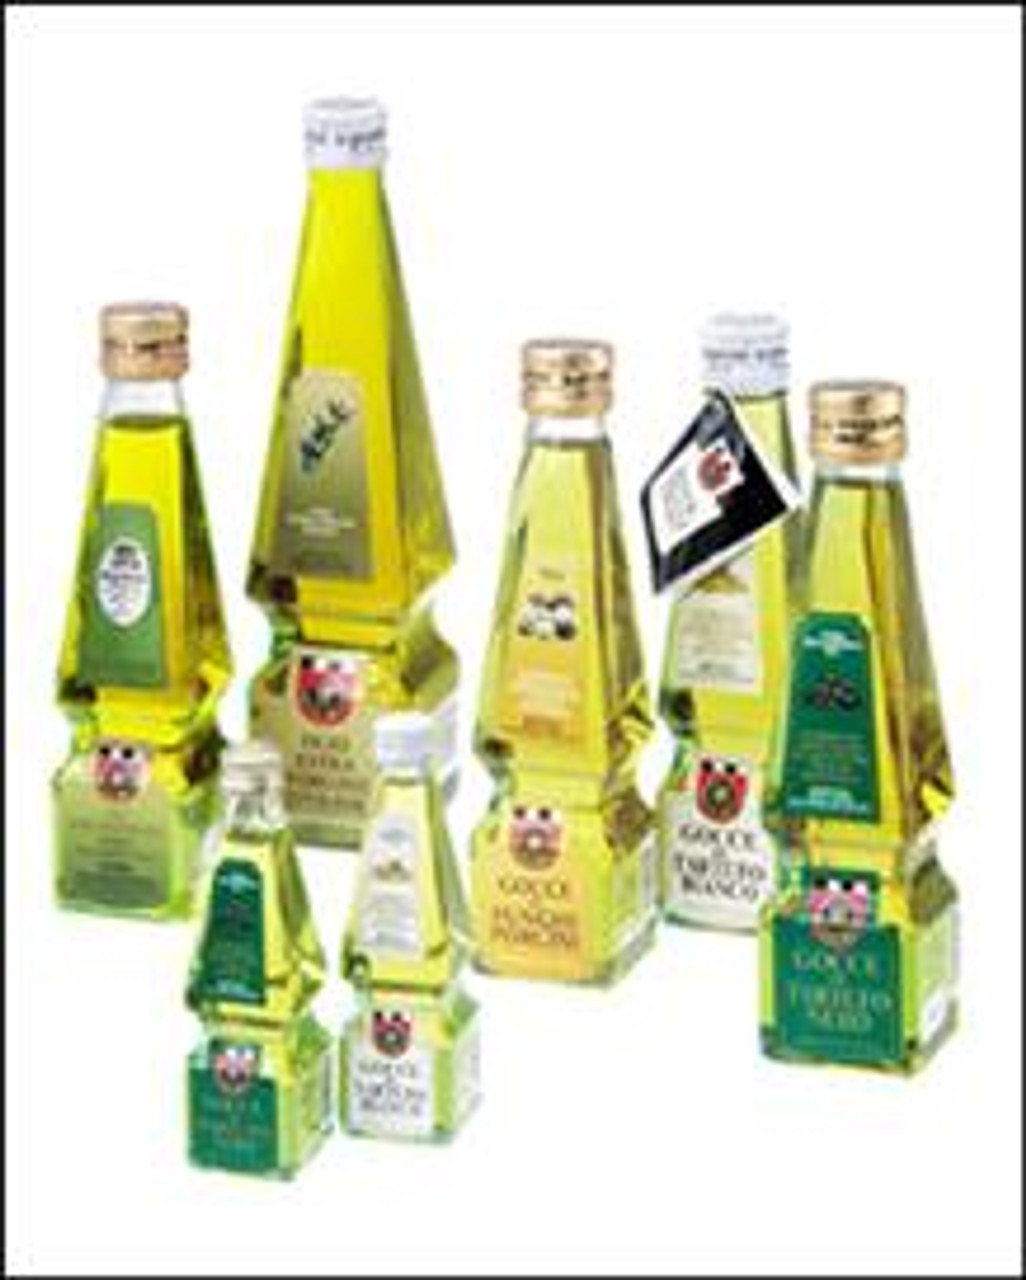 Urbani Extra Virgin Olive Oil with White Truffle